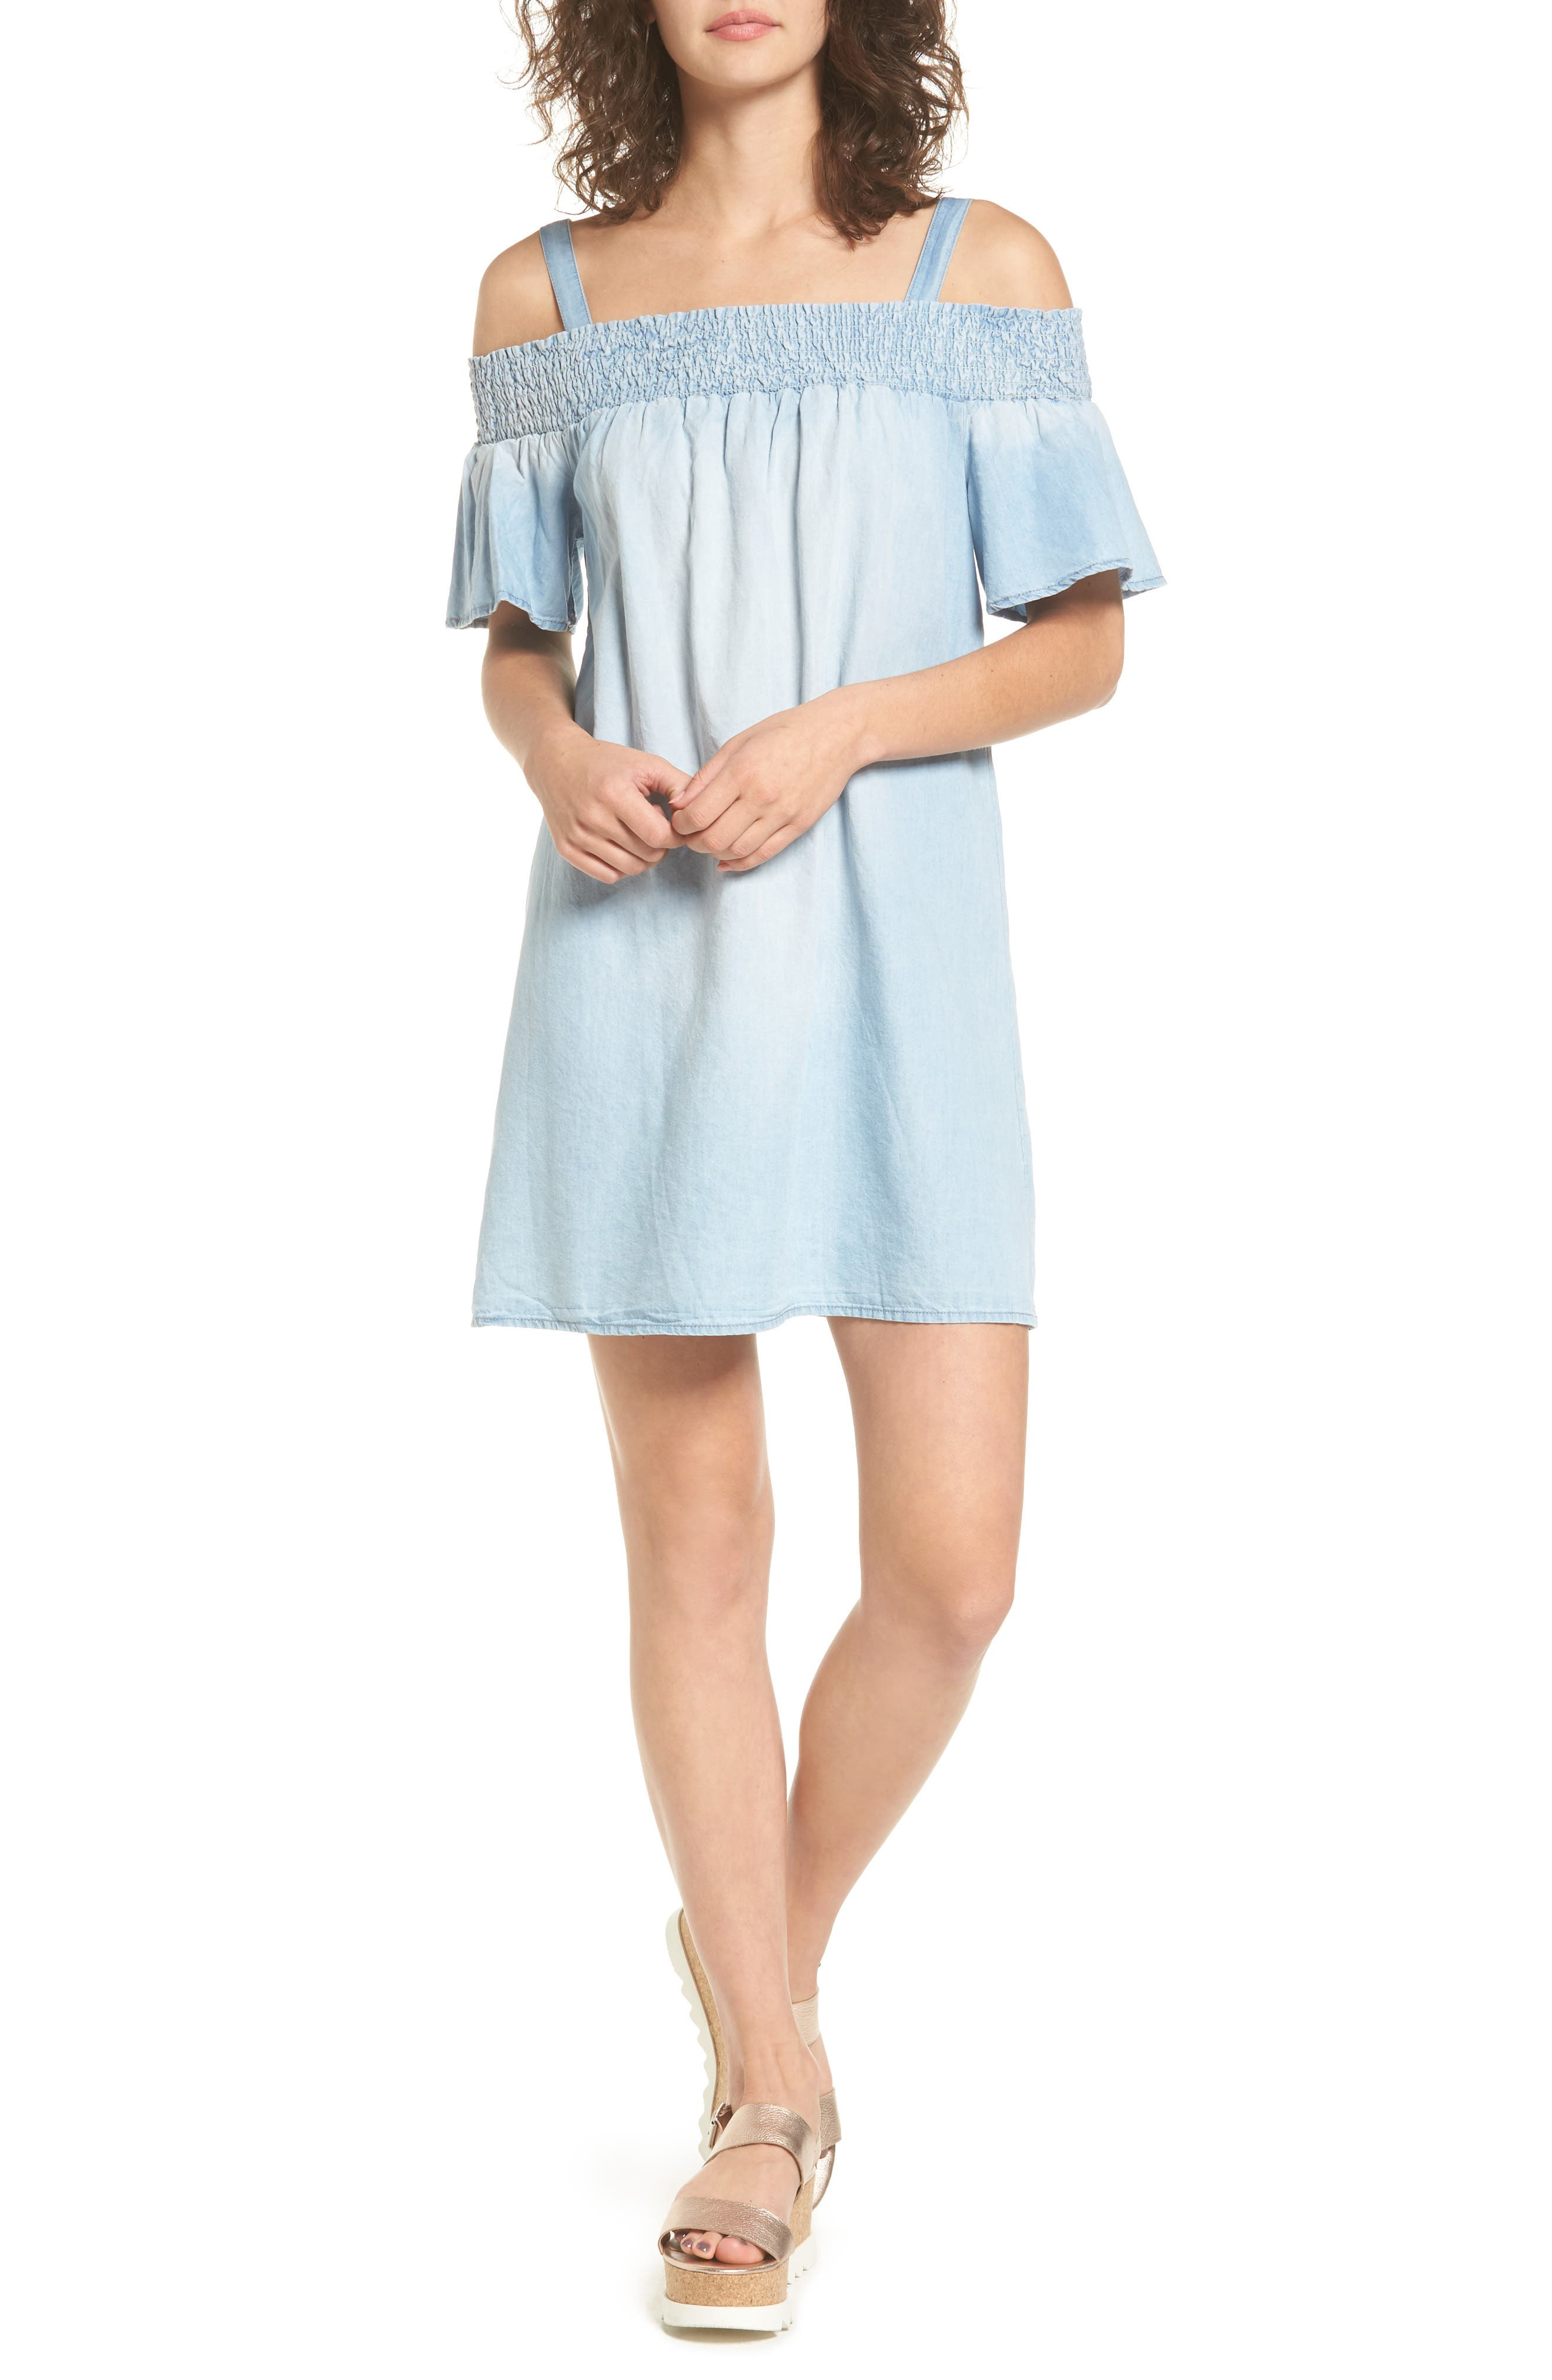 As U Wish Smocked Chambray Off the Shoulder Dress